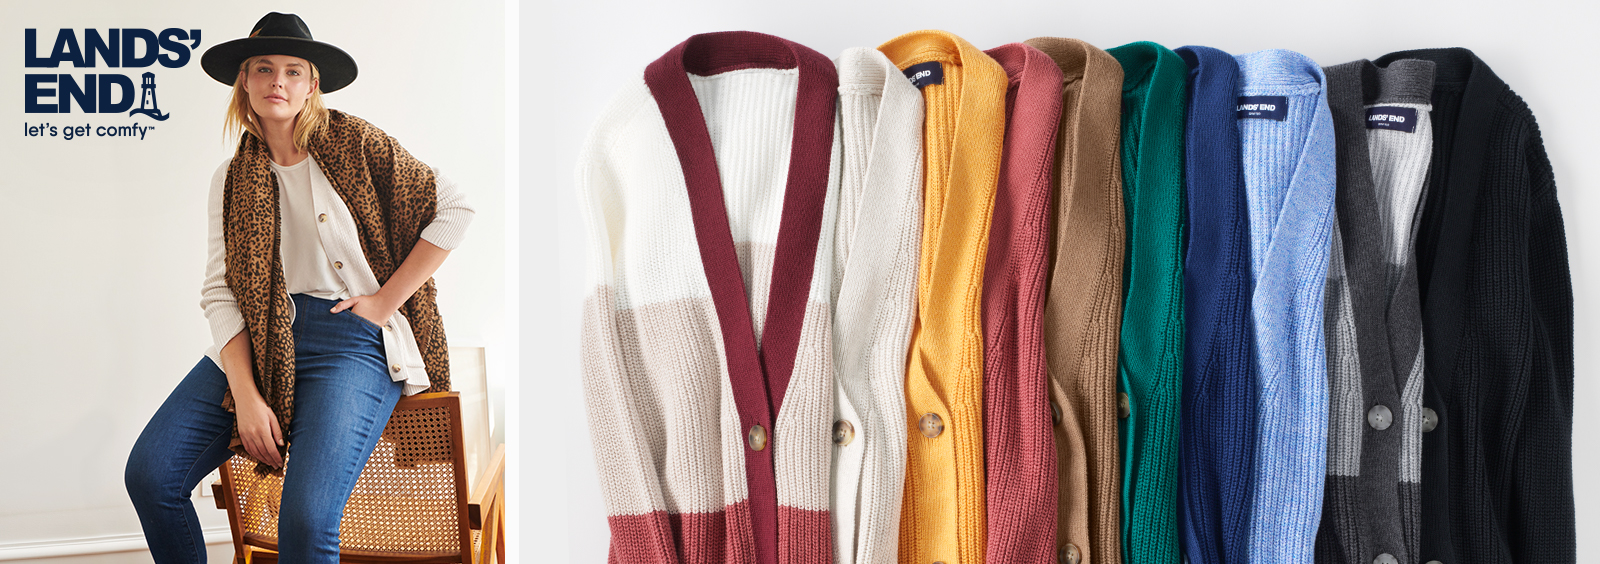 A Guide to Choosing Trendy, Modest Clothes